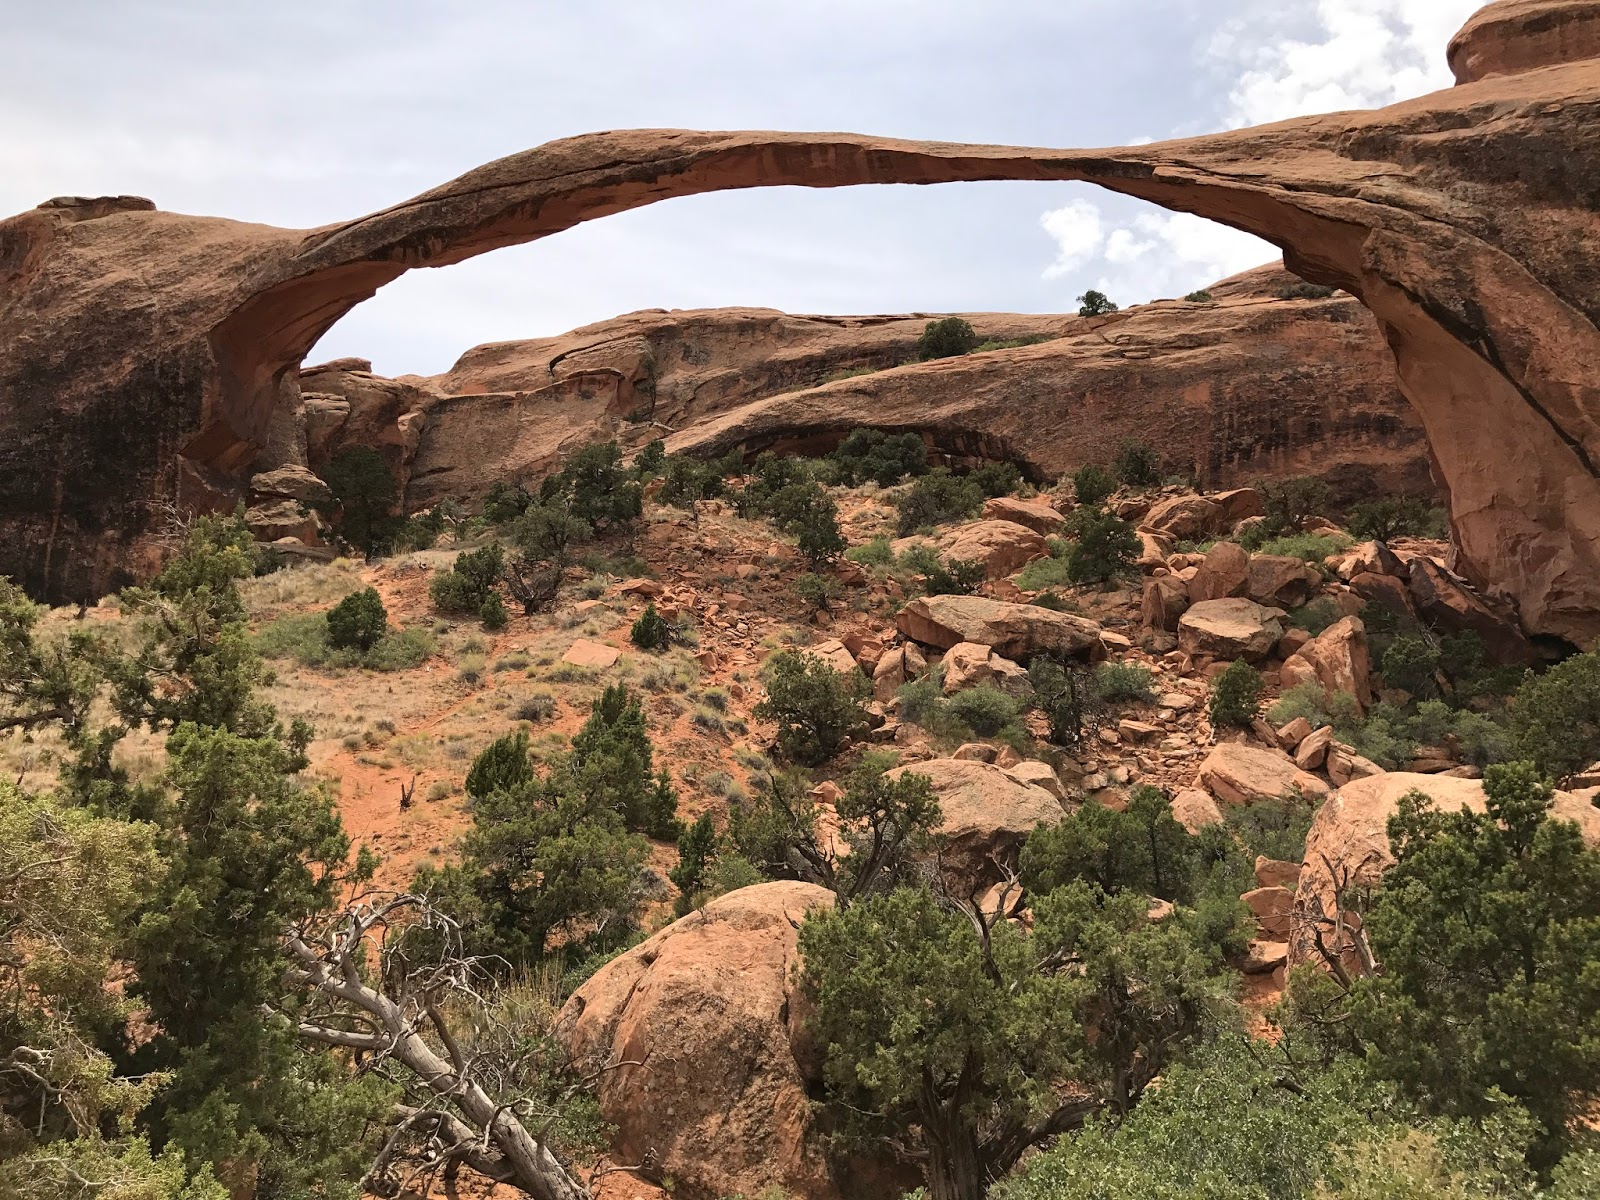 1000 Hikes in 1000 Days Arches National Park Delicate Arch